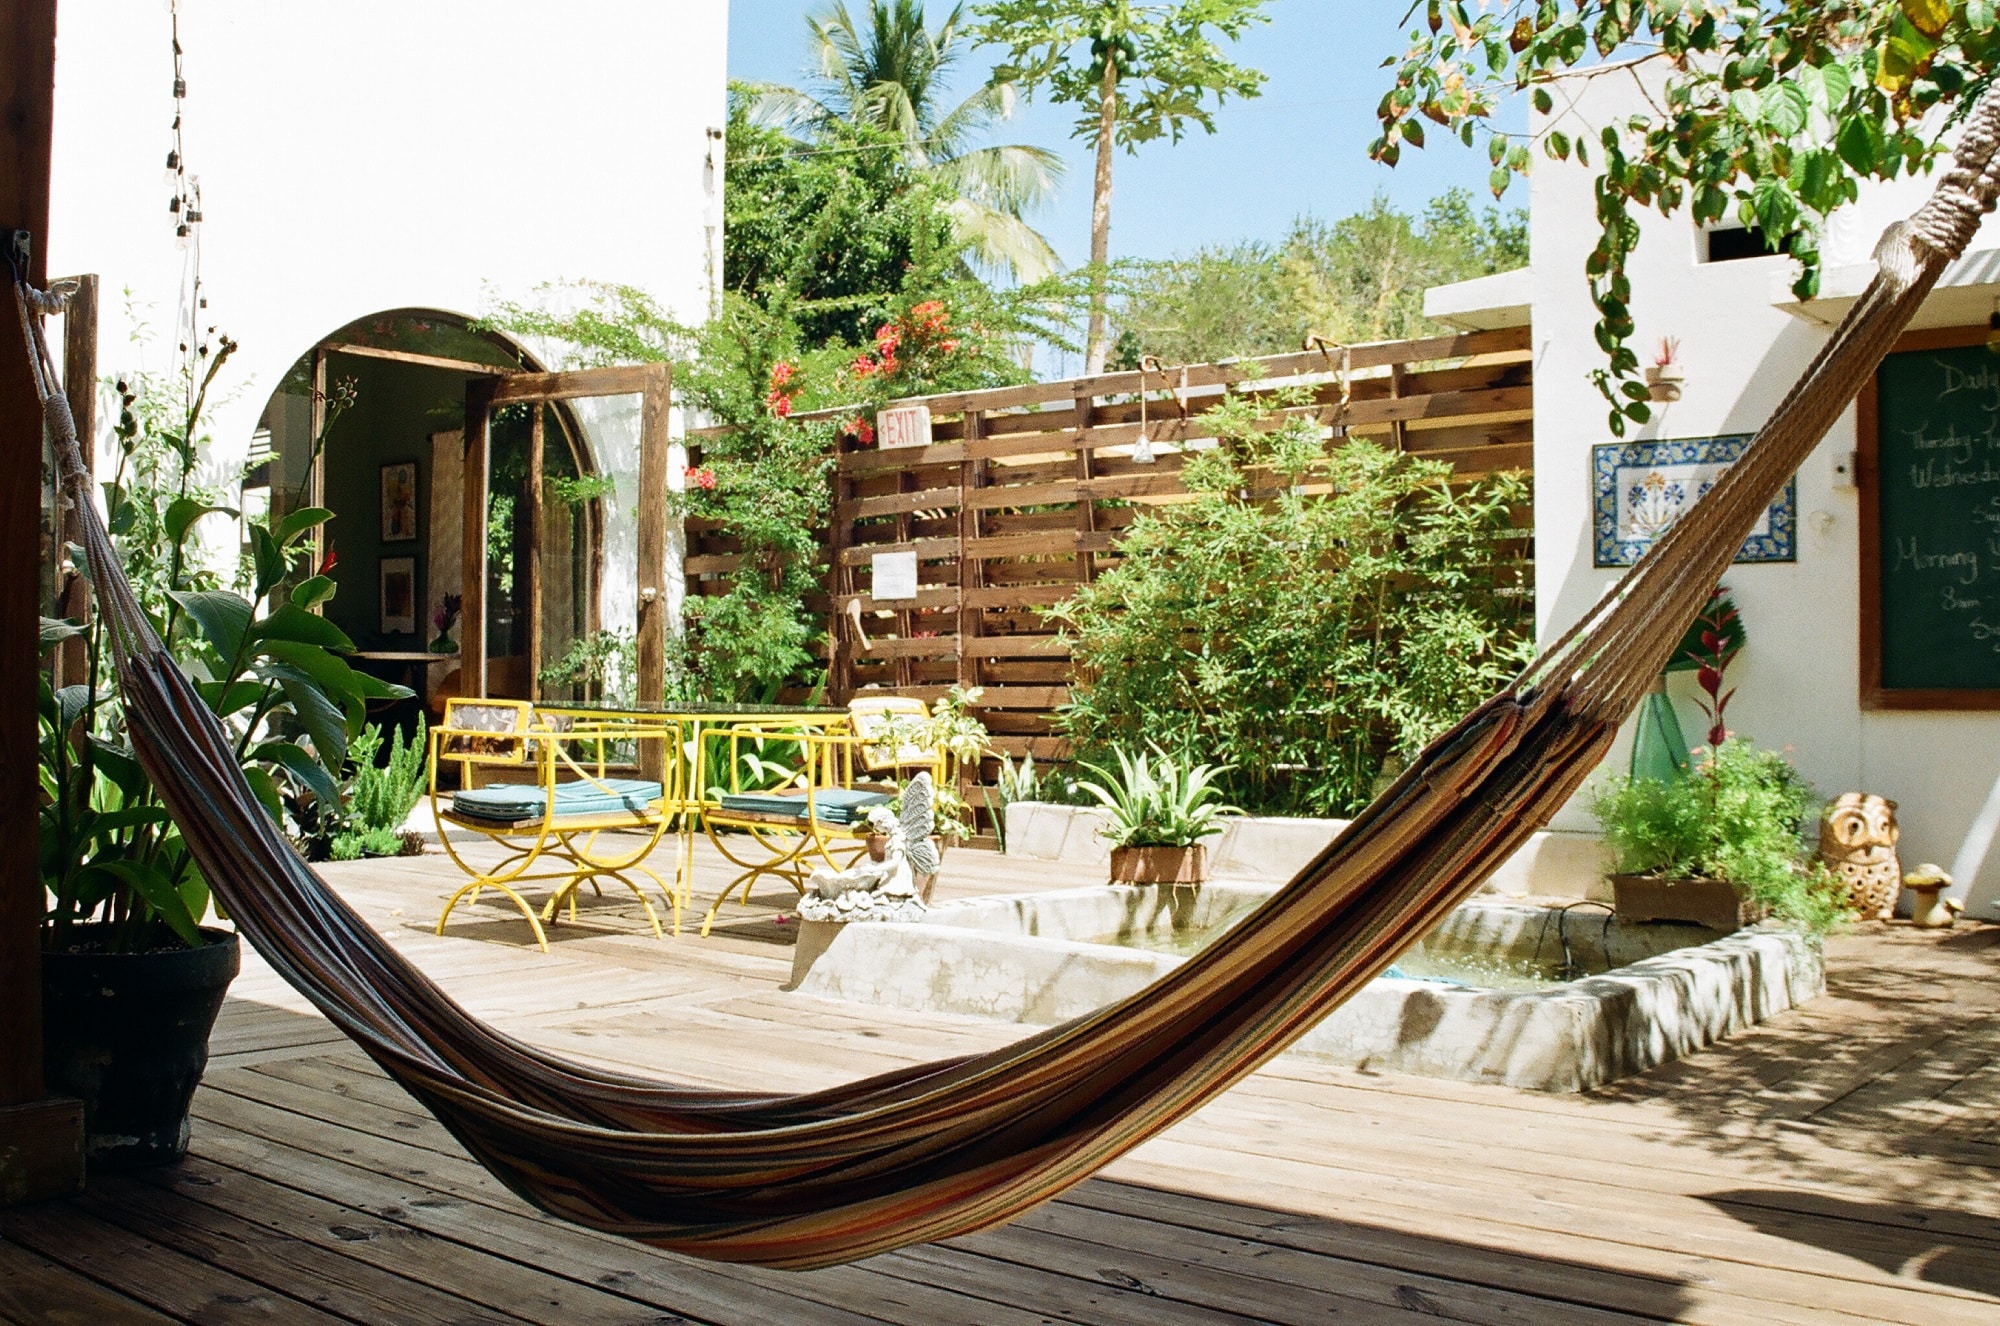 Hammock outside courtyard at the Dreamcatcher